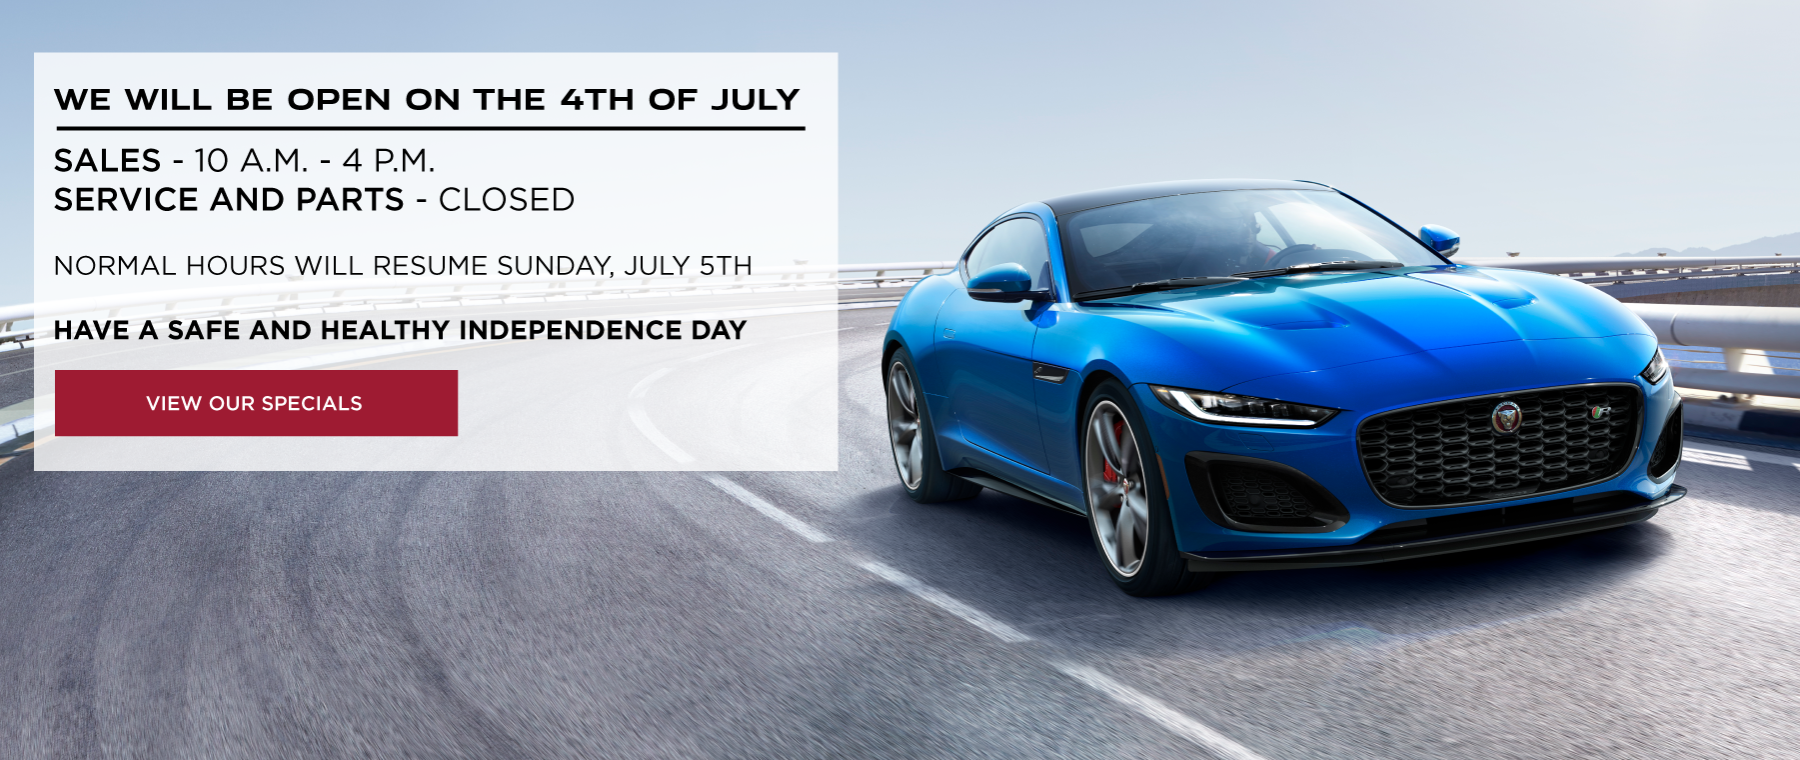 WE WILL BE OPEN ON THE 4TH OF JULY. SALES 10 A.M. - 4 P.M. SERVICE AND PARTS CLOSED. NORMAL HOURS WILL RESUME SUNDAY, JULY 5TH. HAVE A SAFE AND HEALTHY INDEPENDENCE DAY. SEE OUR SPECIALS. BLUE 2021 JAGUAR F-TYPE COUPE DRIVING DOWN CURVED ROAD